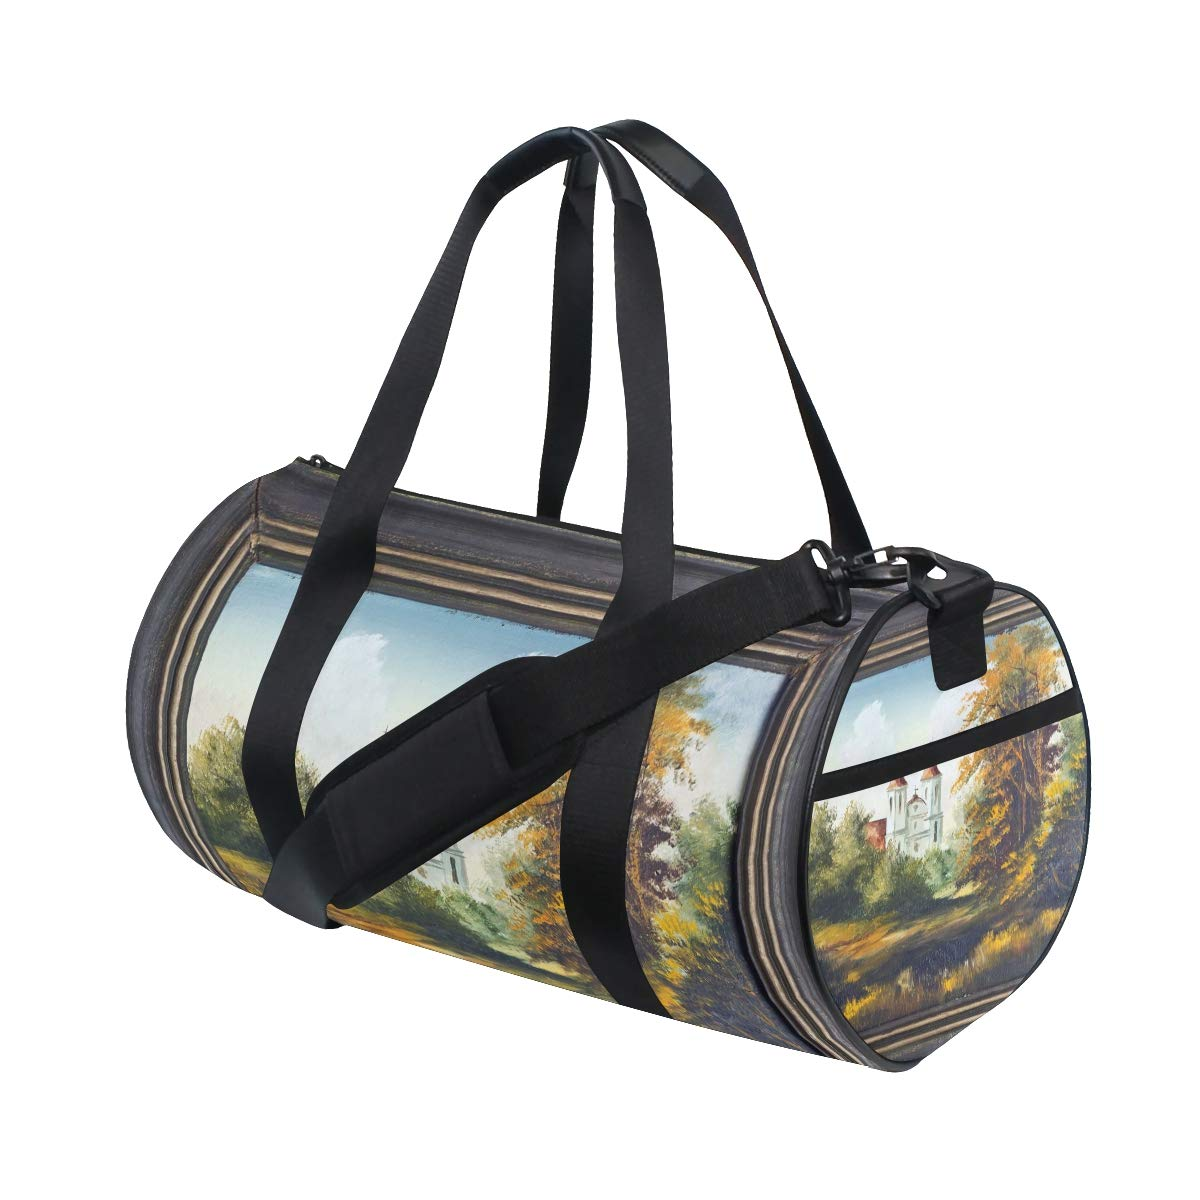 Sports Gym Bag Travel Duffel Bag with Pockets Luggage & Travel Gear Shoulder Strap Fitness Bag